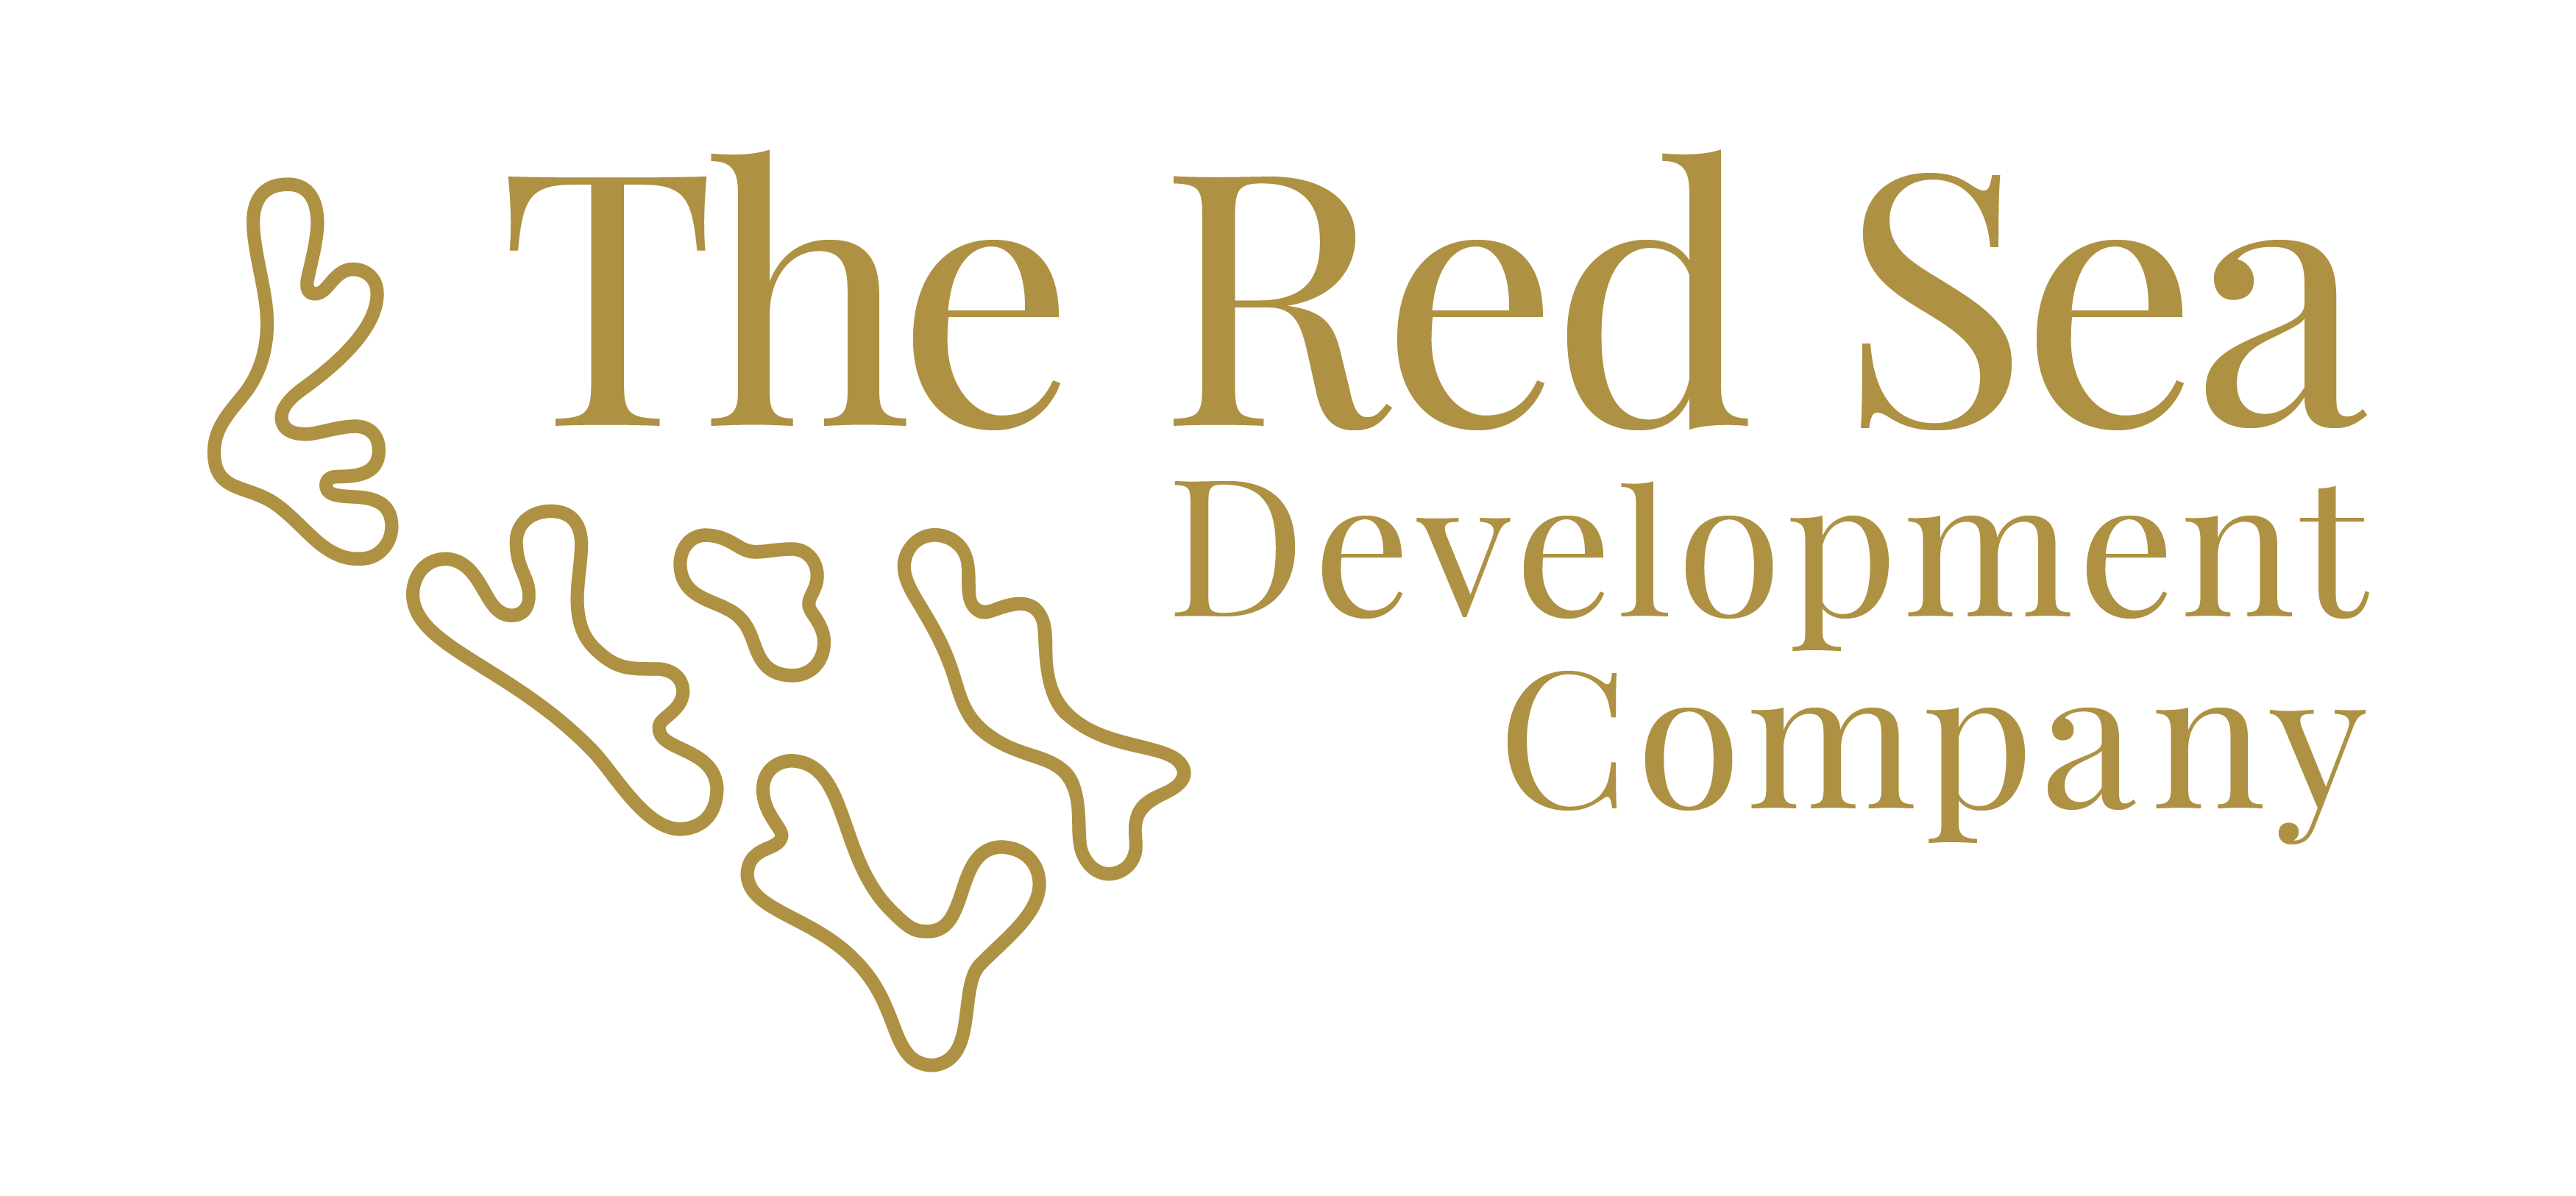 The Red Sea Development Company